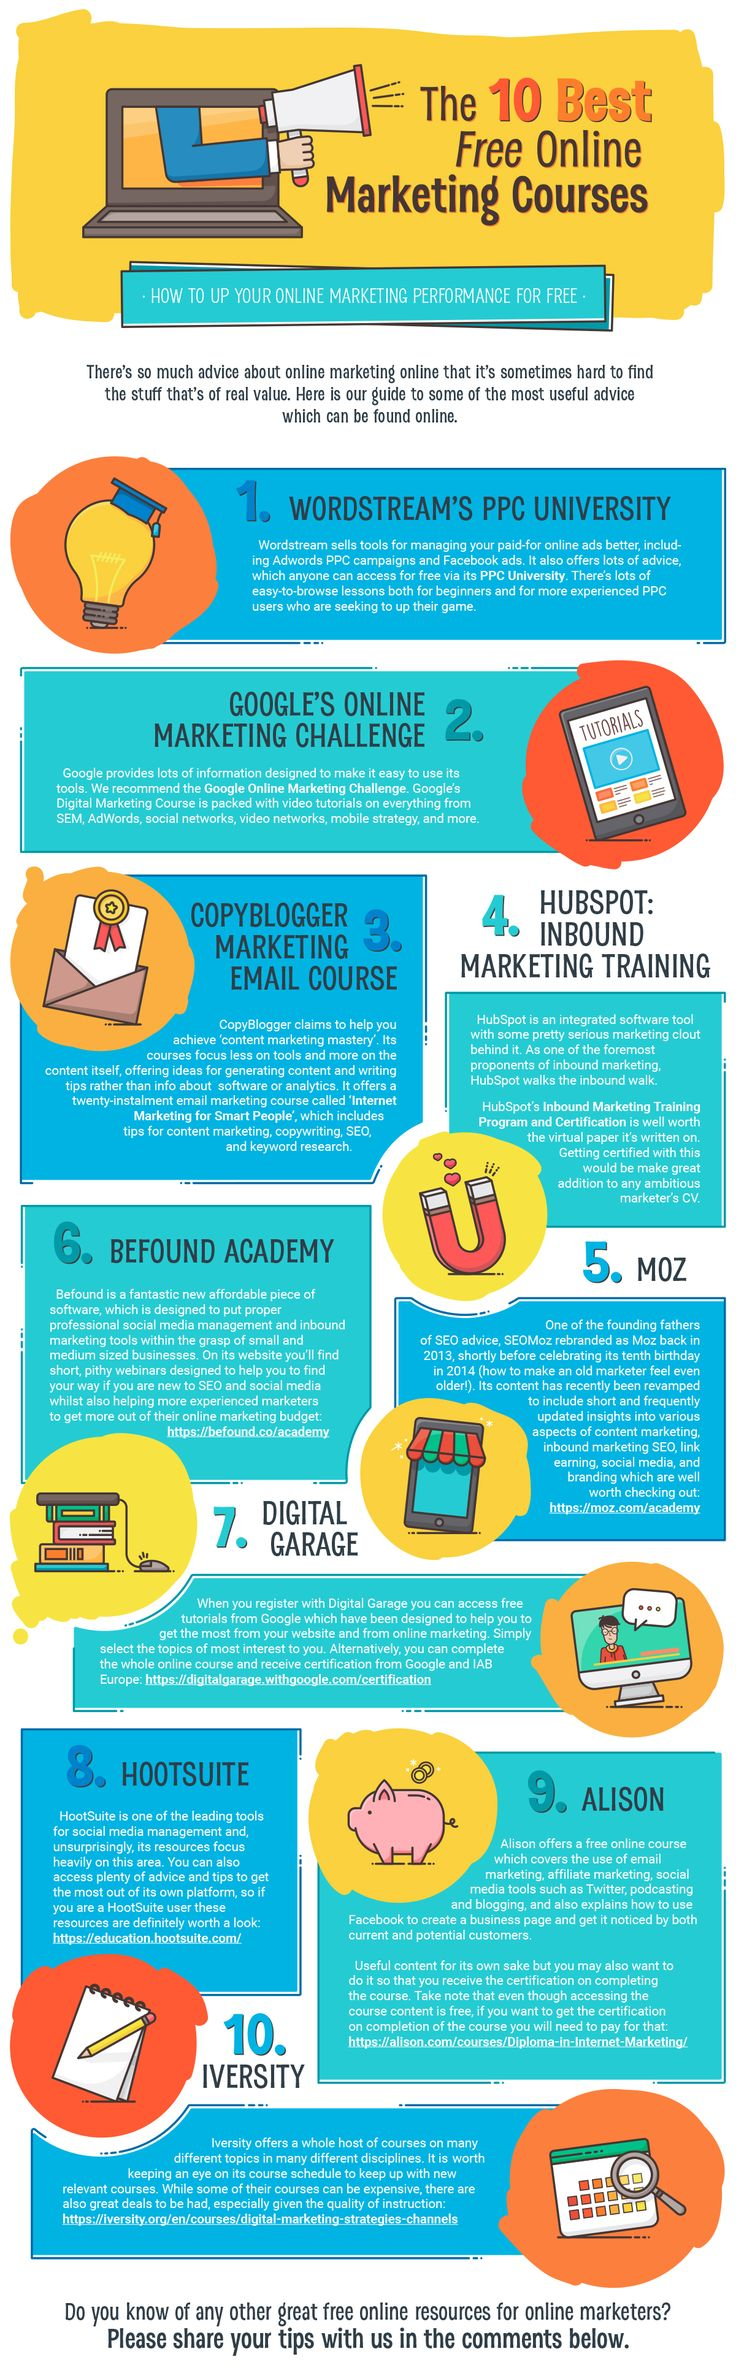 want-to-learn-online-marketing-10-free-courses-you-should-sign-up-for